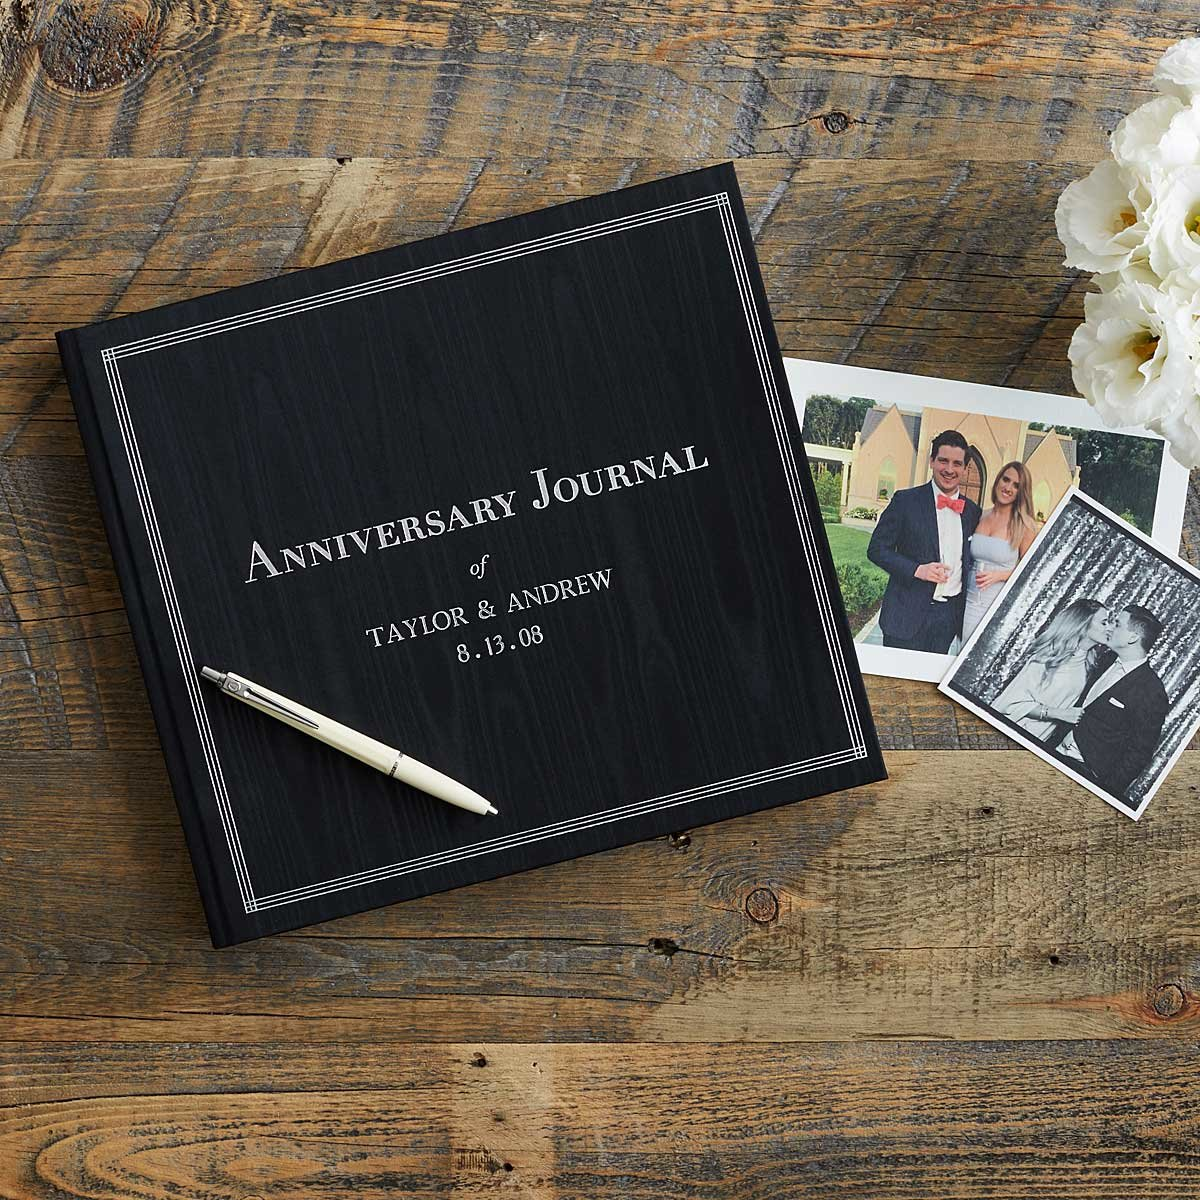 Customizable The Personalized Anniversary Journal